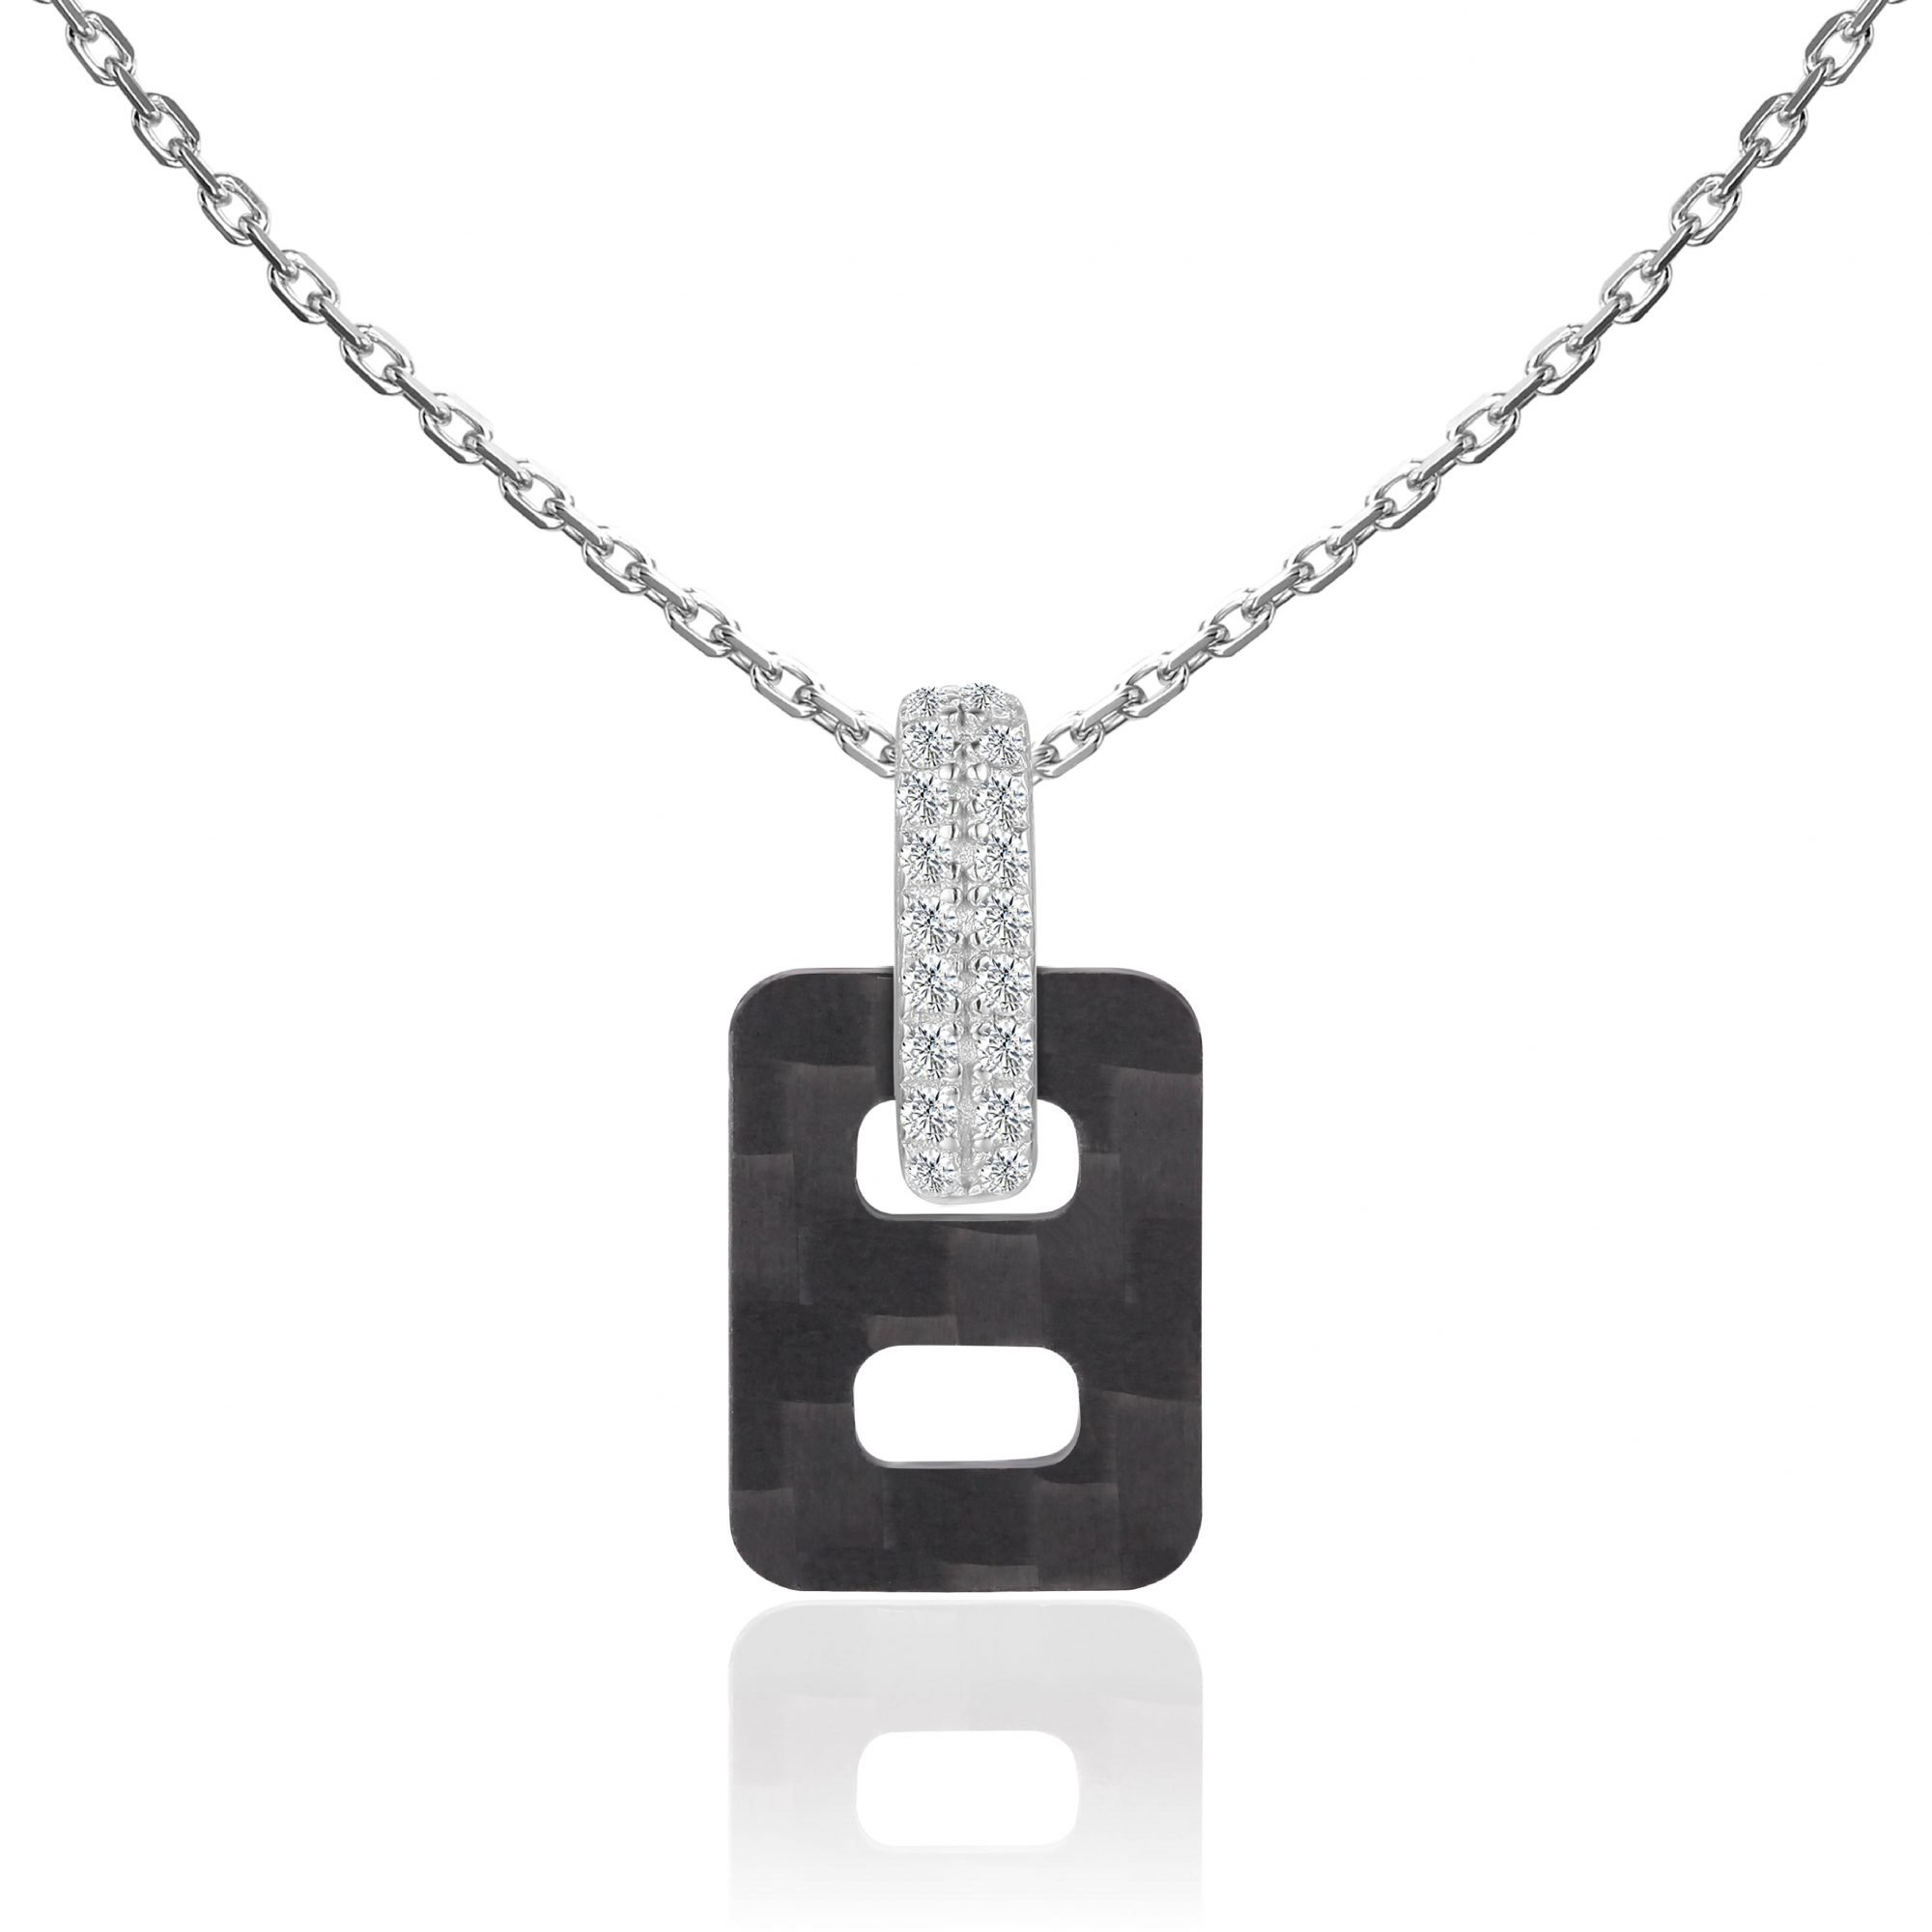 """VIKTOR ALEXANDER 925 SILVER PENDANT JEWELLERY WHITE SAPPHIRE GEMSTONE WITH 18"""" 925 SILVER CHAIN CONNECTOR CARBON FIBER CHARM"""